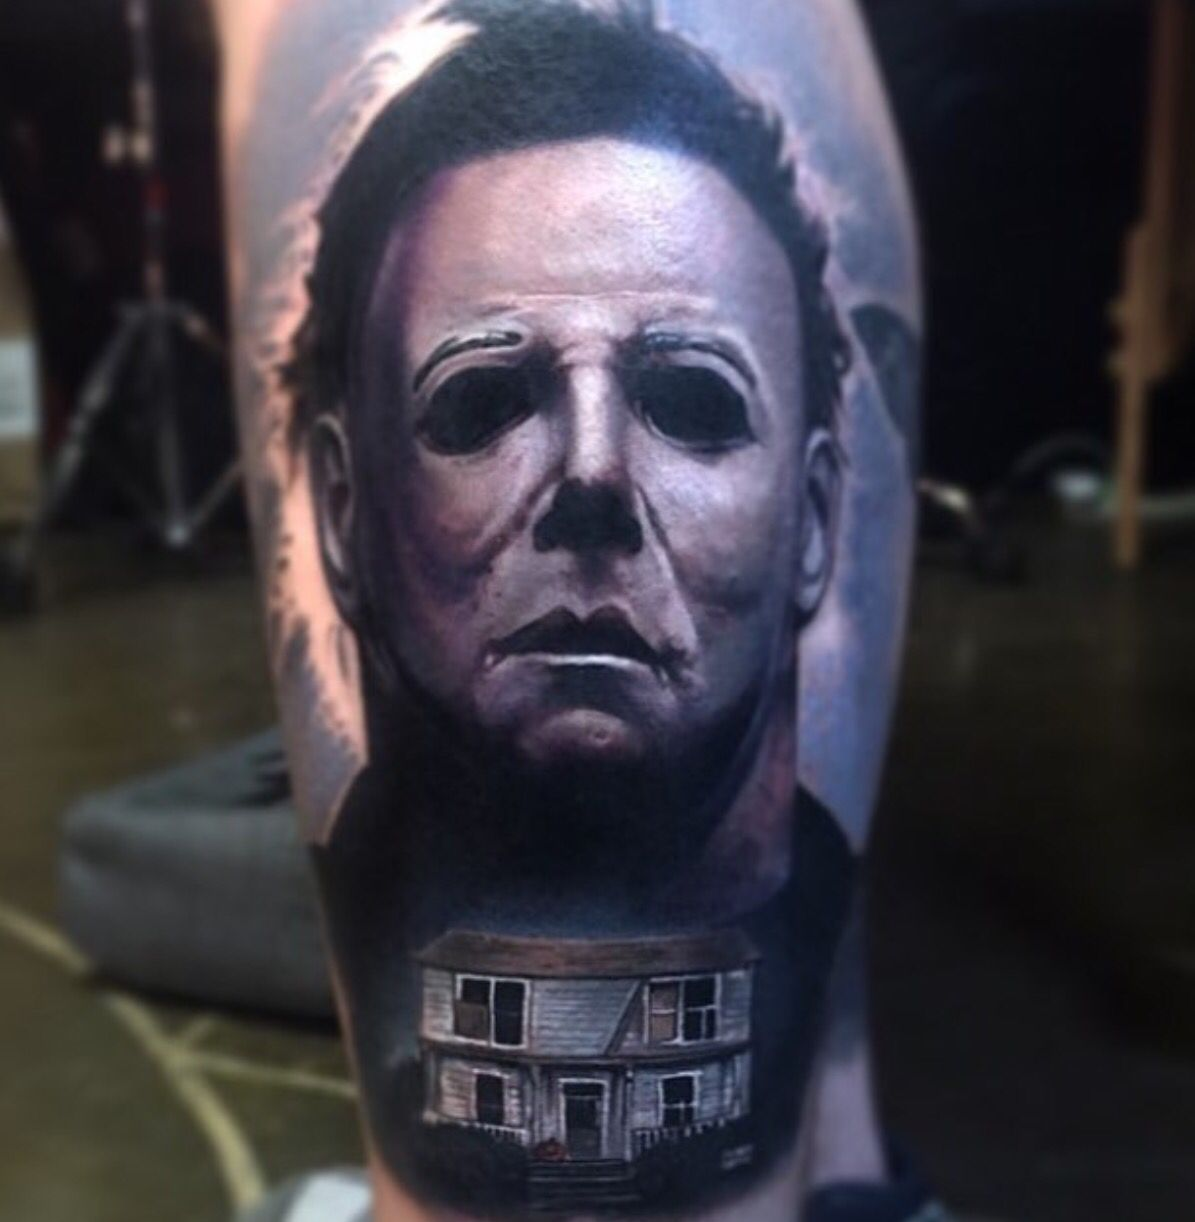 Best in the business - Paul Acker Tattoos - Michael Myers | Ink ...